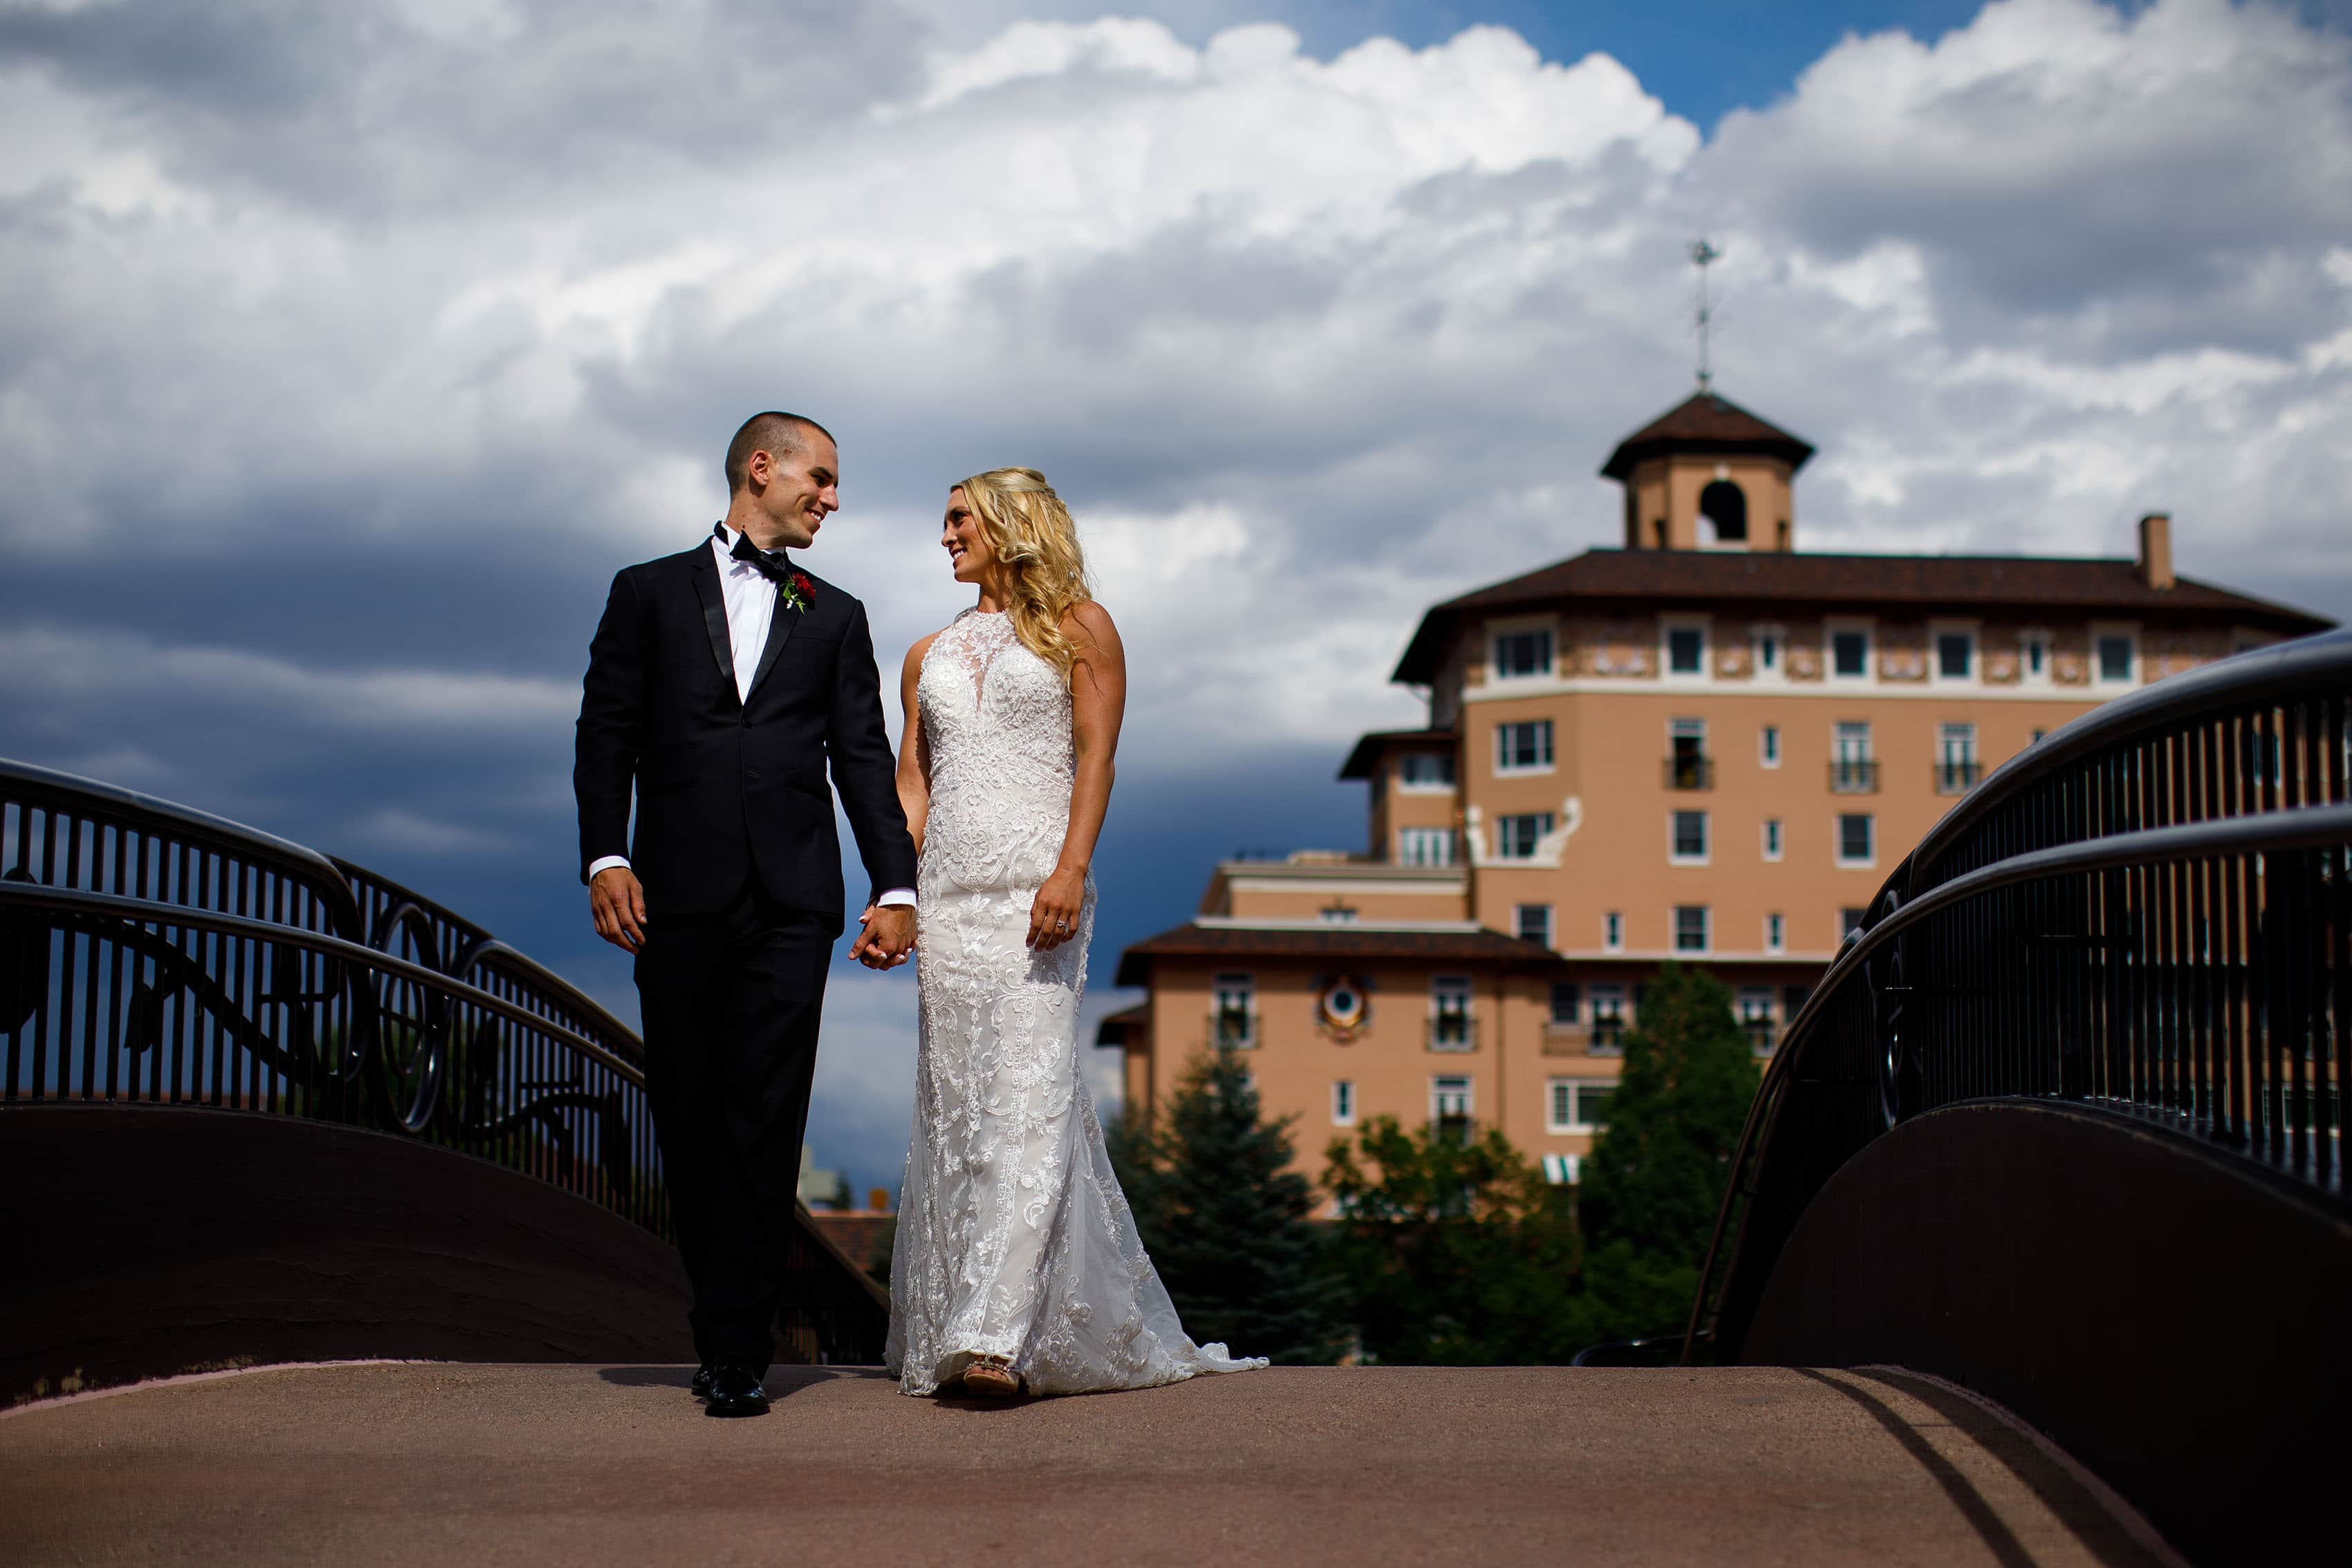 Bride and groom walk on the bridge at The Broadmoor